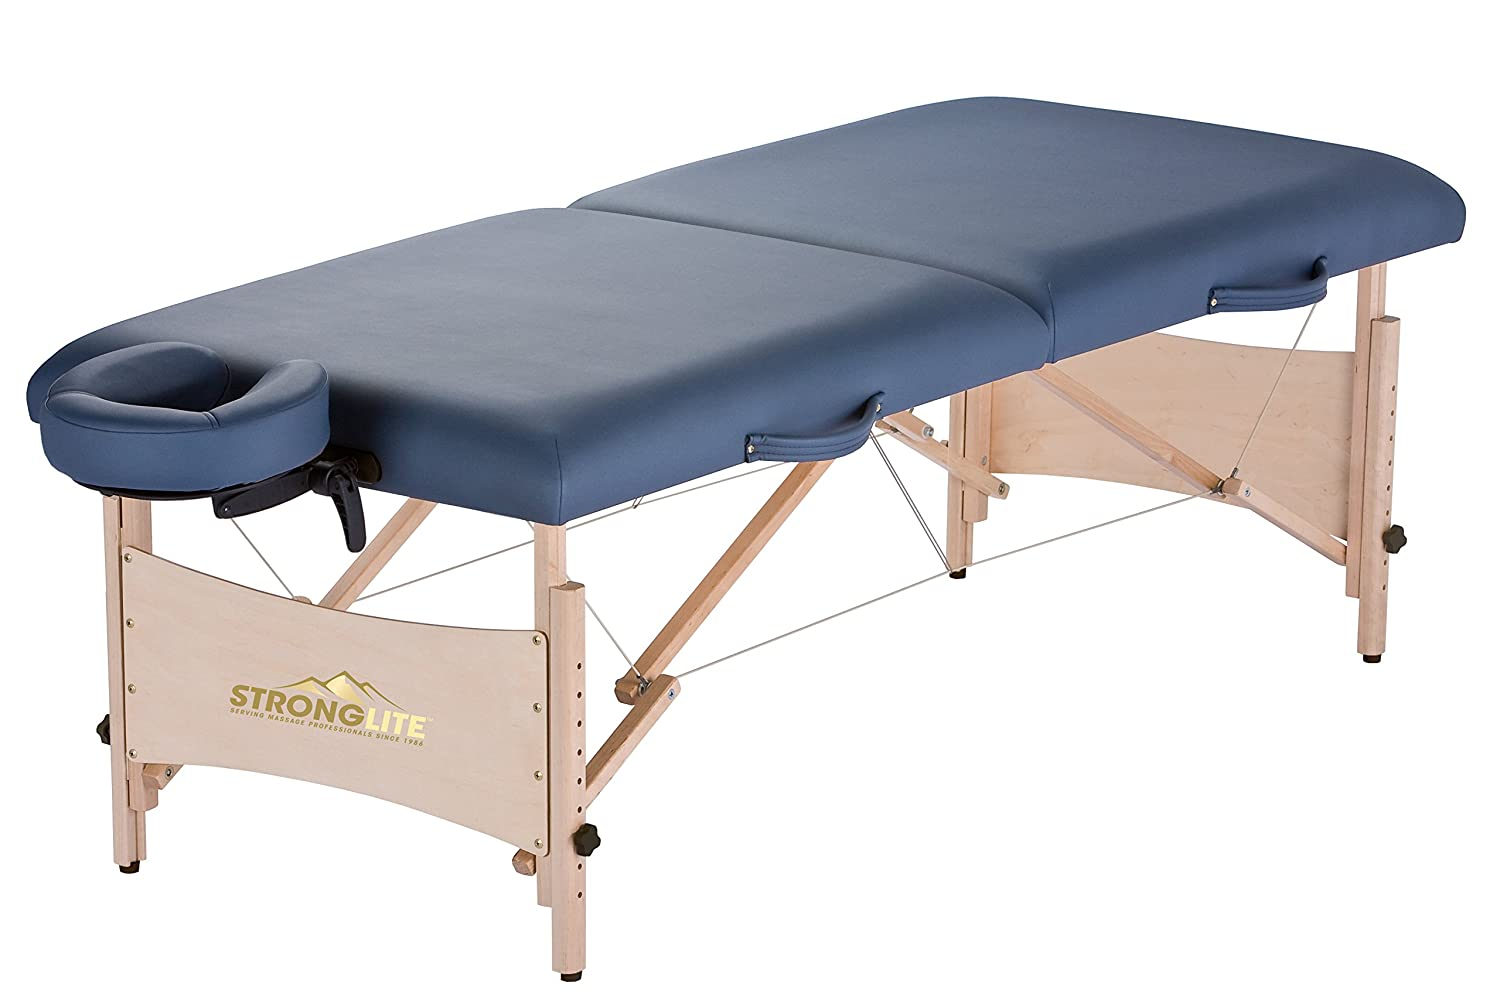 amazoncom stronglite standard portable massage table pkg agate health u0026 personal care